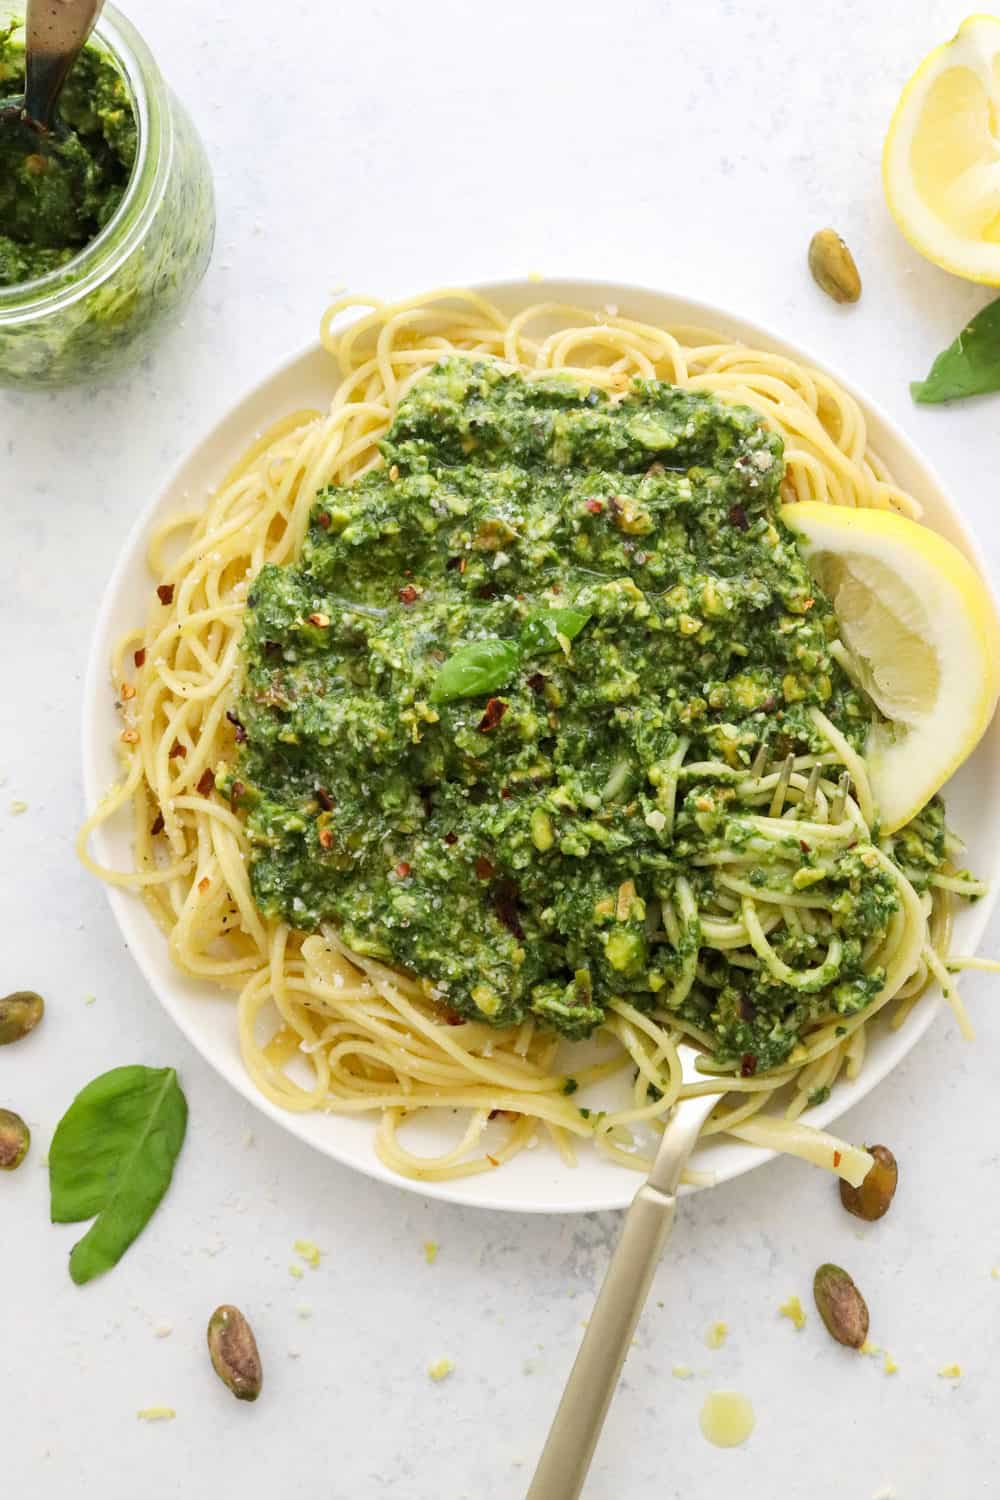 Round plate of spaghetti topped with chunky homemade basil pesto recipe with a jar of the pesto behind it and sliced lemon next to it